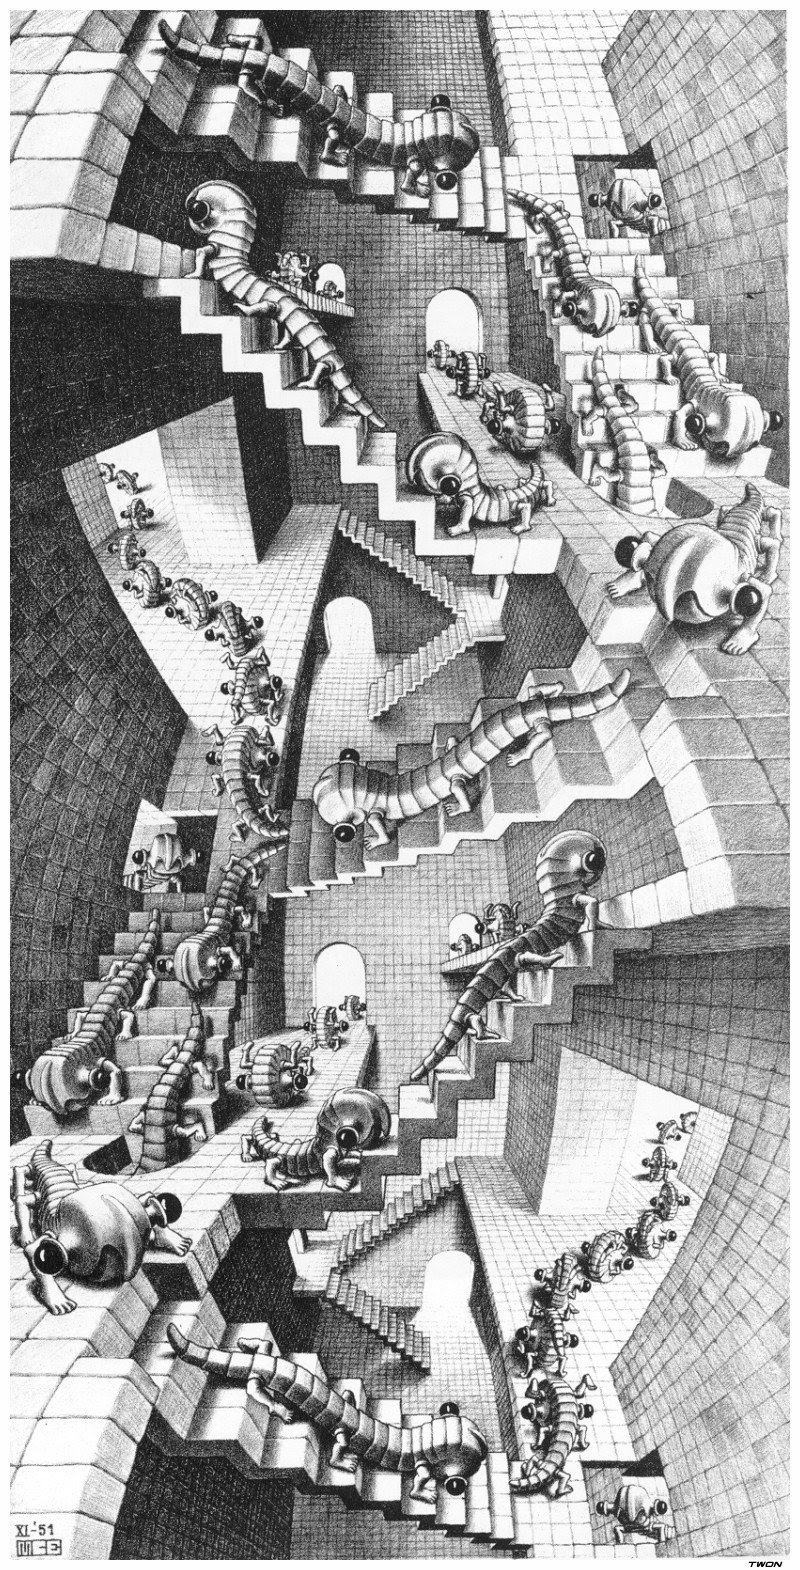 the life and art of mc escher The web site to explore the great mc escher artworks  a vitally important figure in escher's life and work  'mc escher: art and science',.